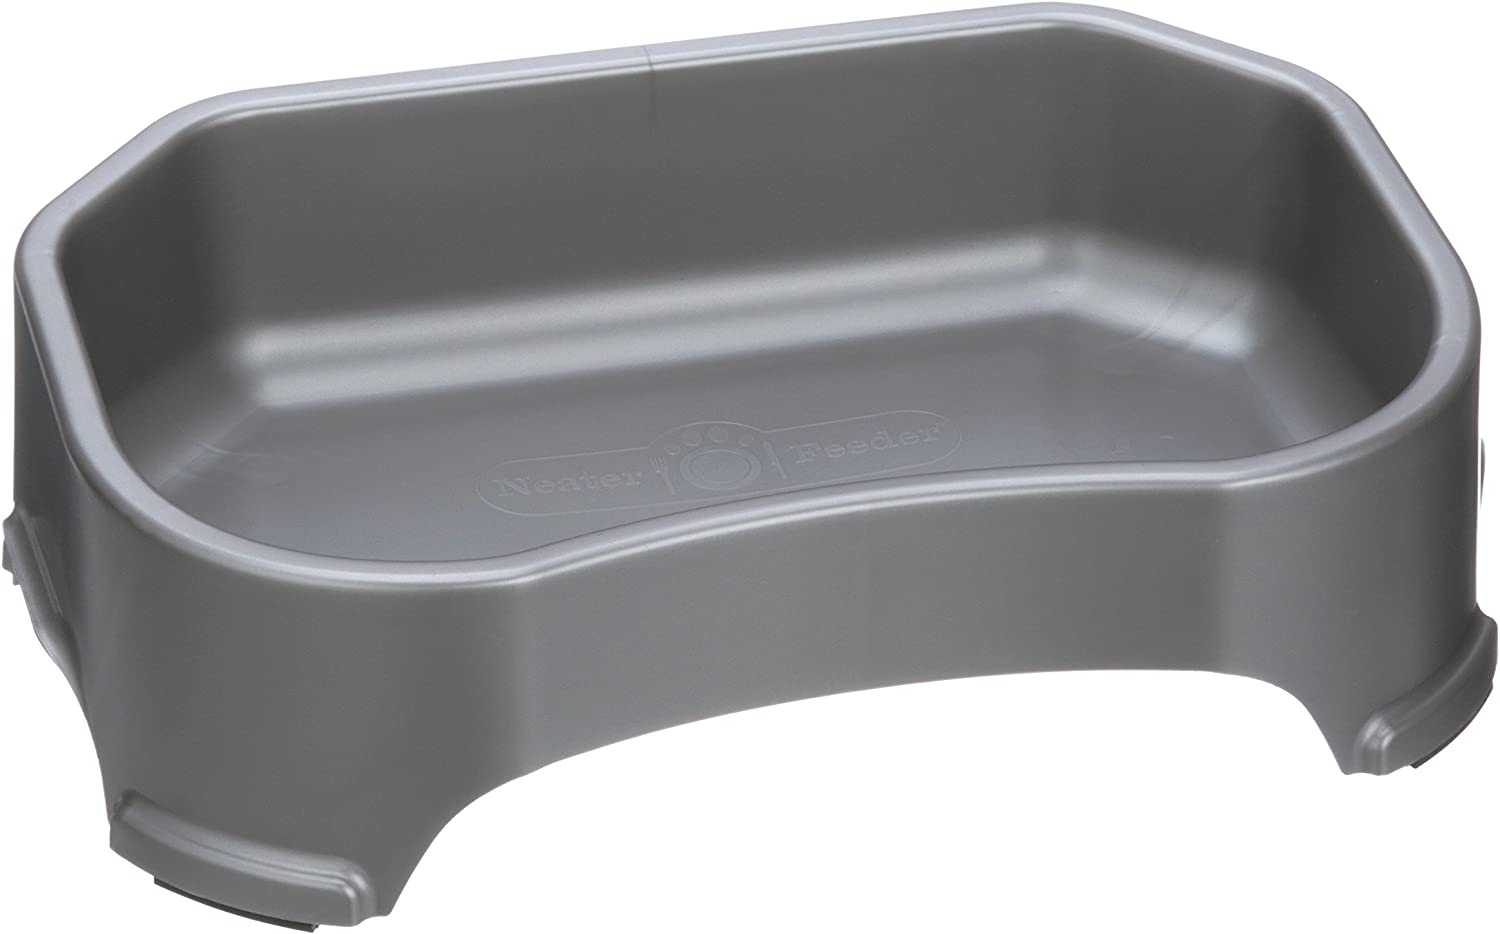 Neater Pet Brands Big Bowl - Extra Large Water Bowl for Dogs (1.25 Gallon Capacity, 160 oz) - Gunmetal Grey - Base for Neater Slow Feeder